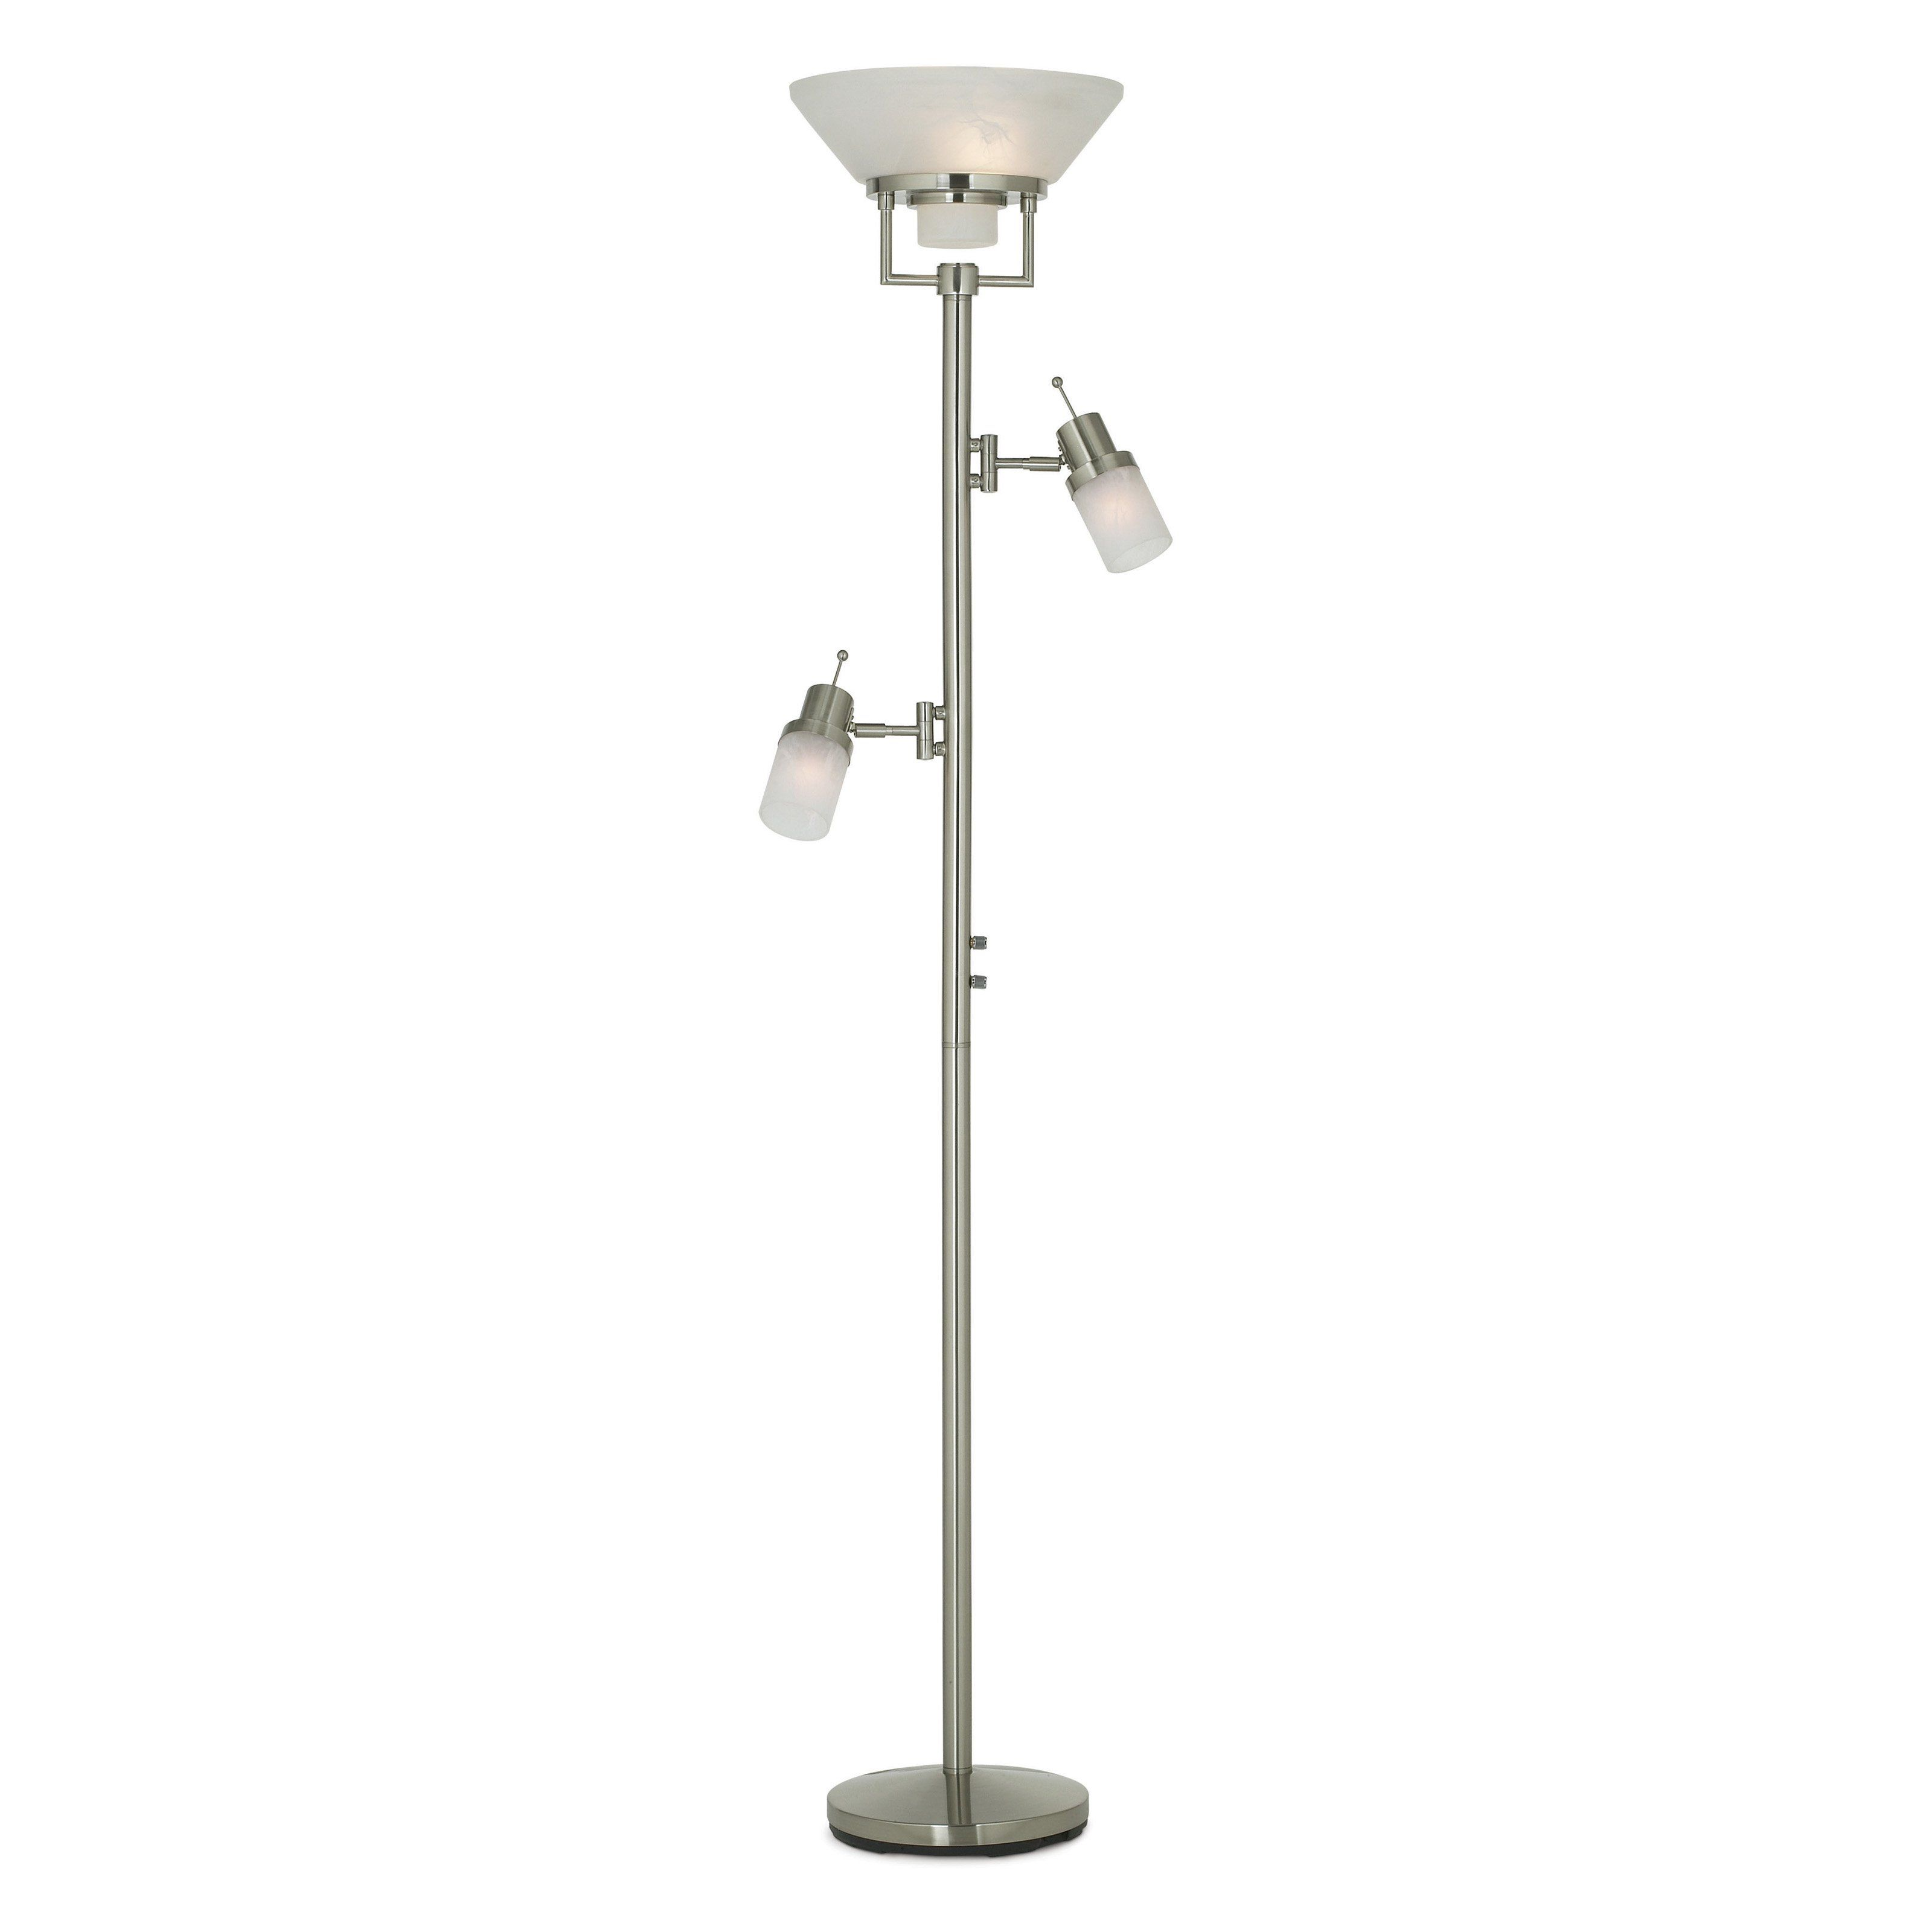 Pacific Coast Lighting Techno Chic Torchiere Lamp 85